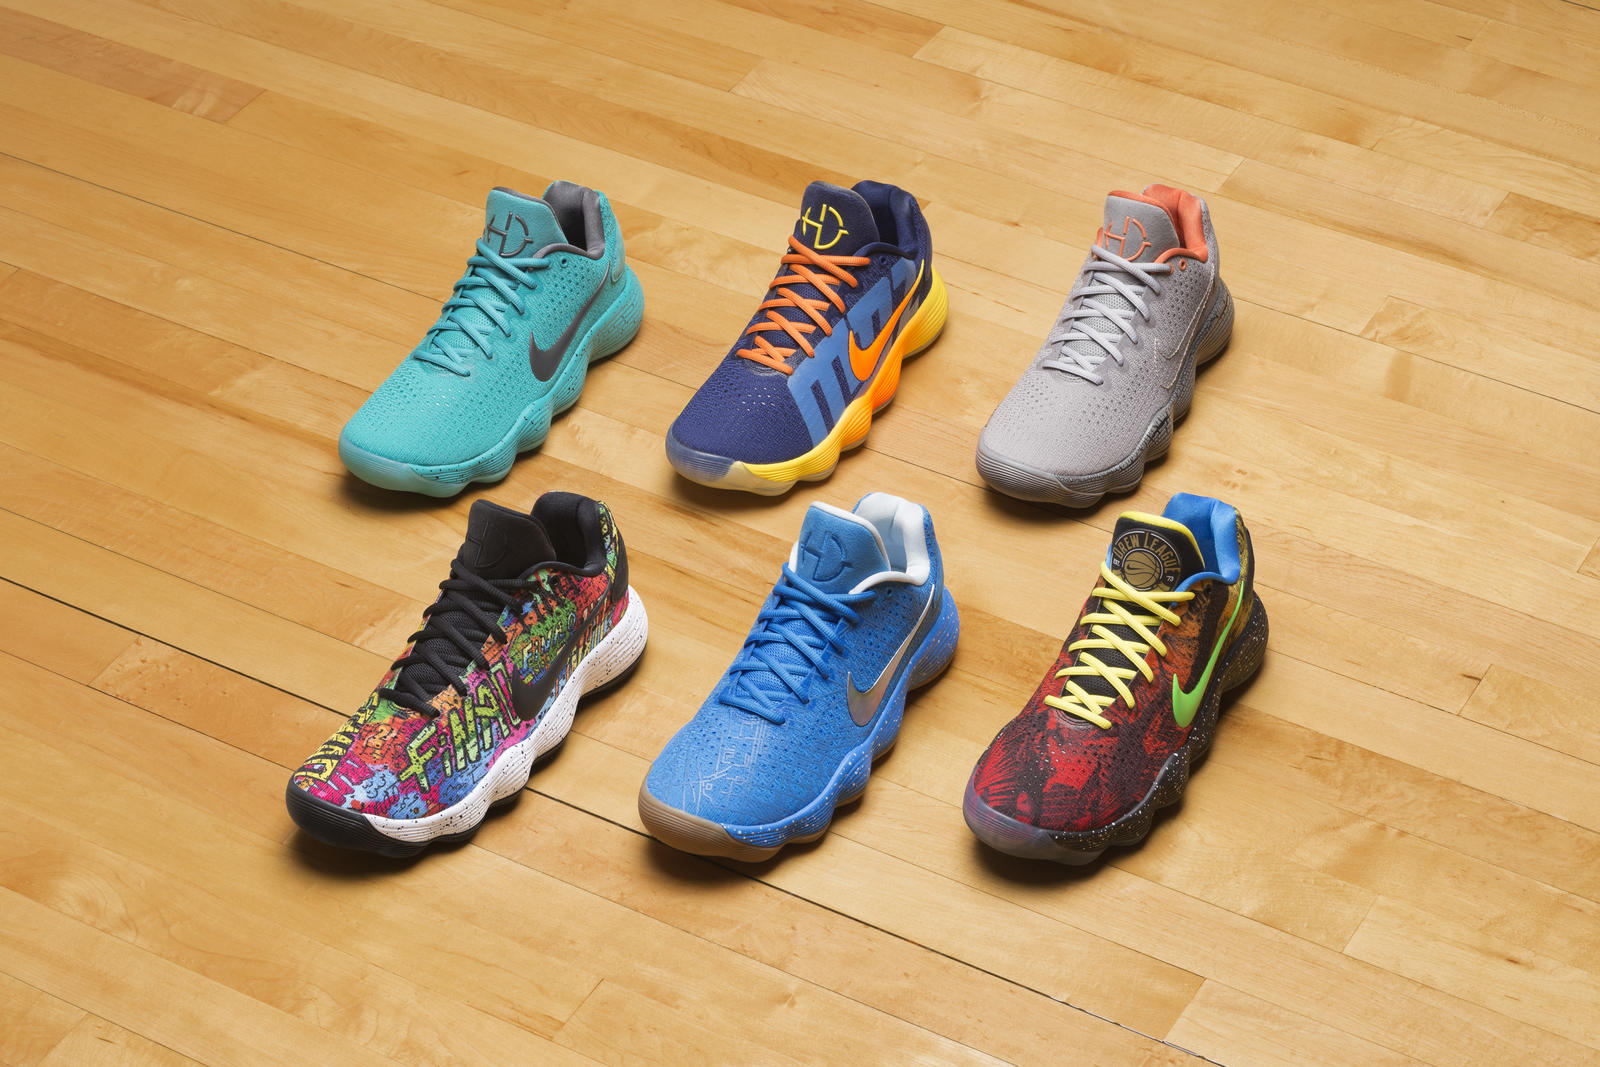 New Nike Hyperdunk Low Collection Celebrates Basketball's Global Capital  Cities